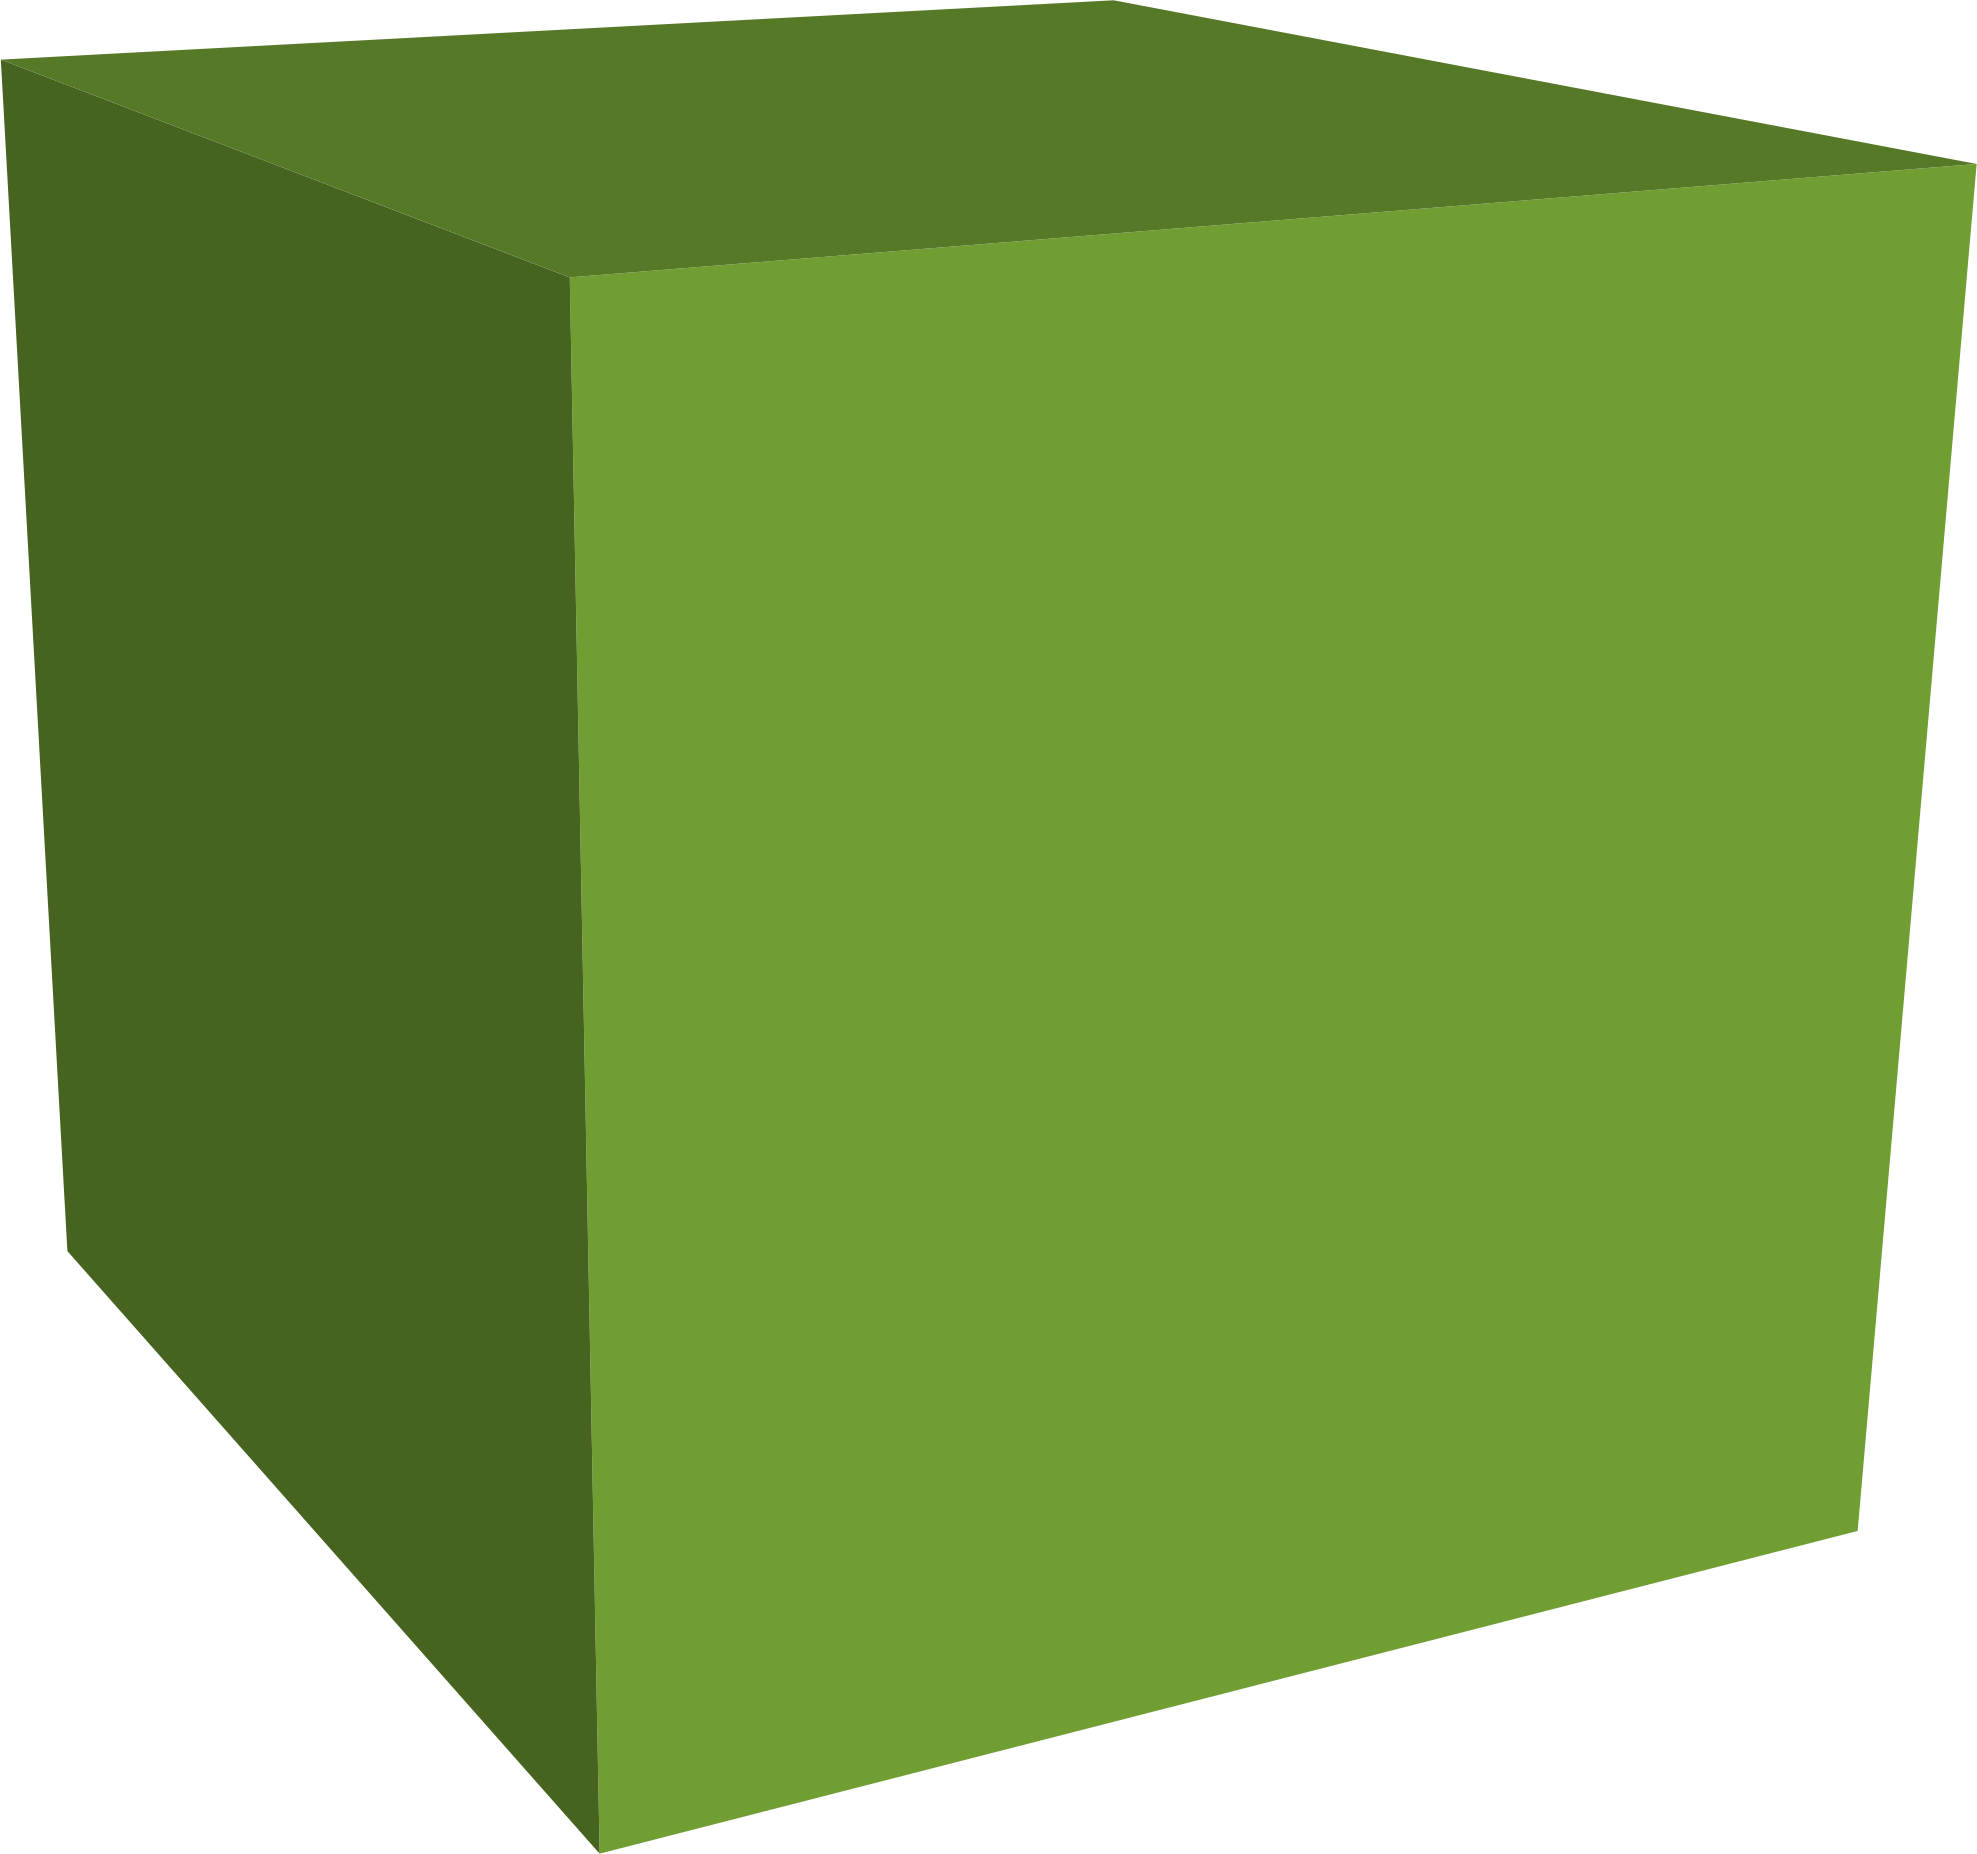 Green cube png. Clipart big image